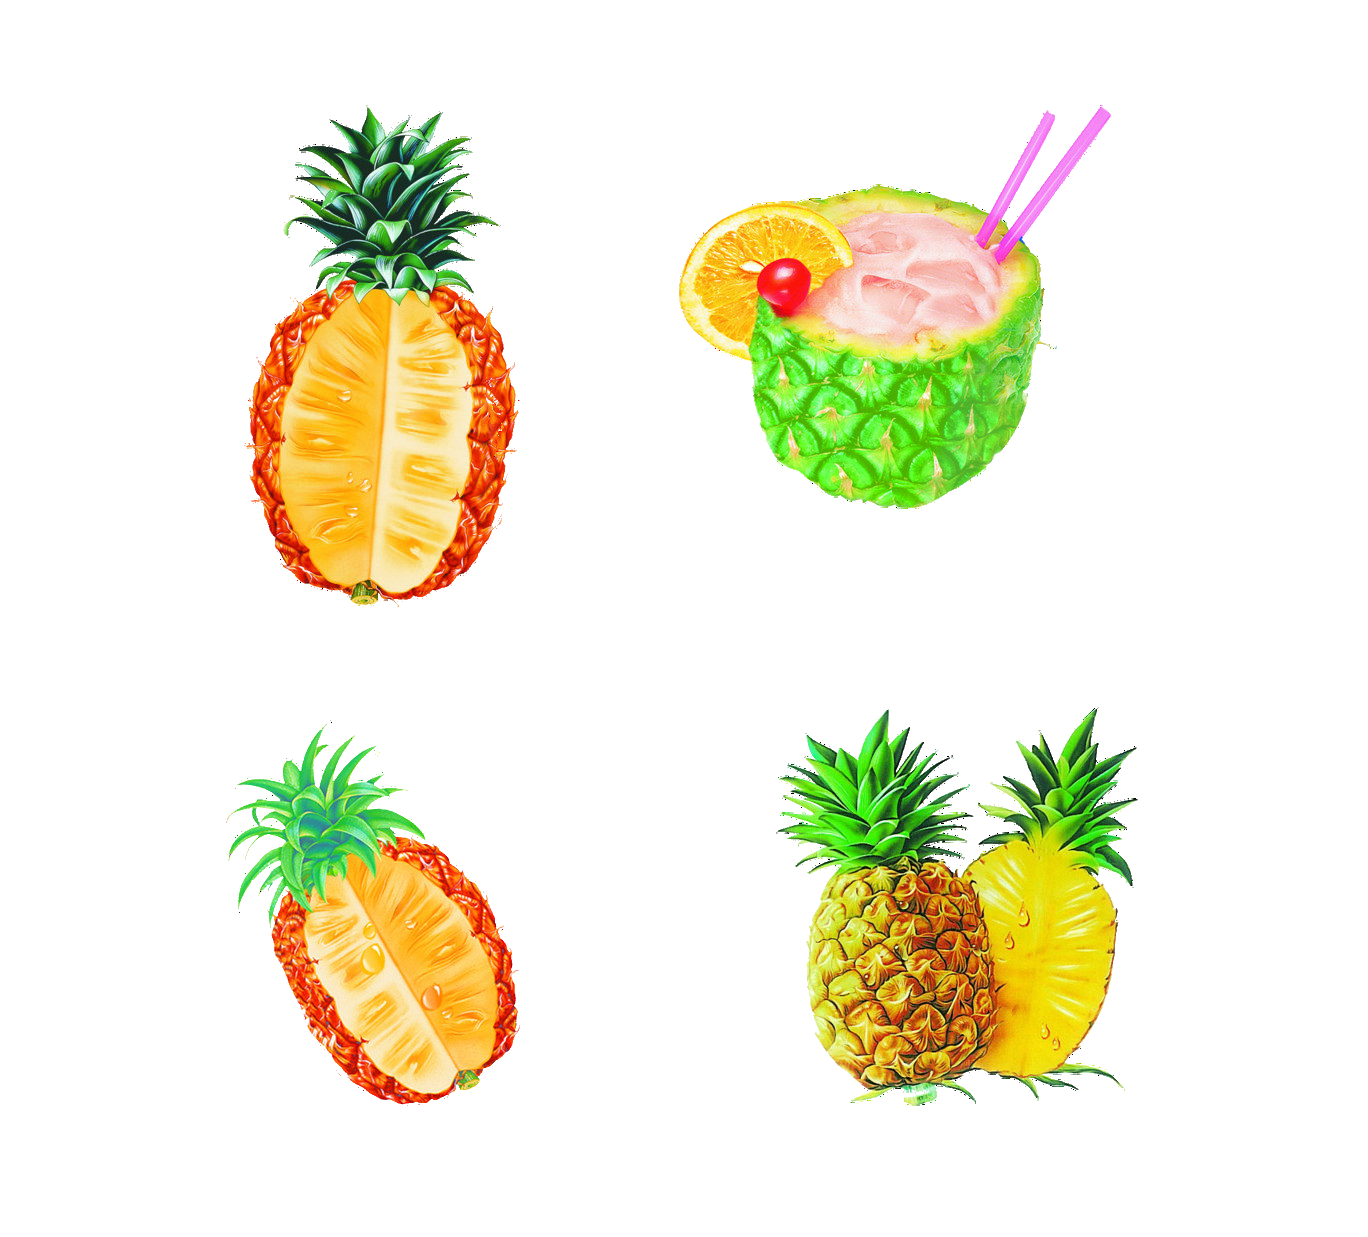 Boluo fan fruit dashu. Pineapple clipart tropical